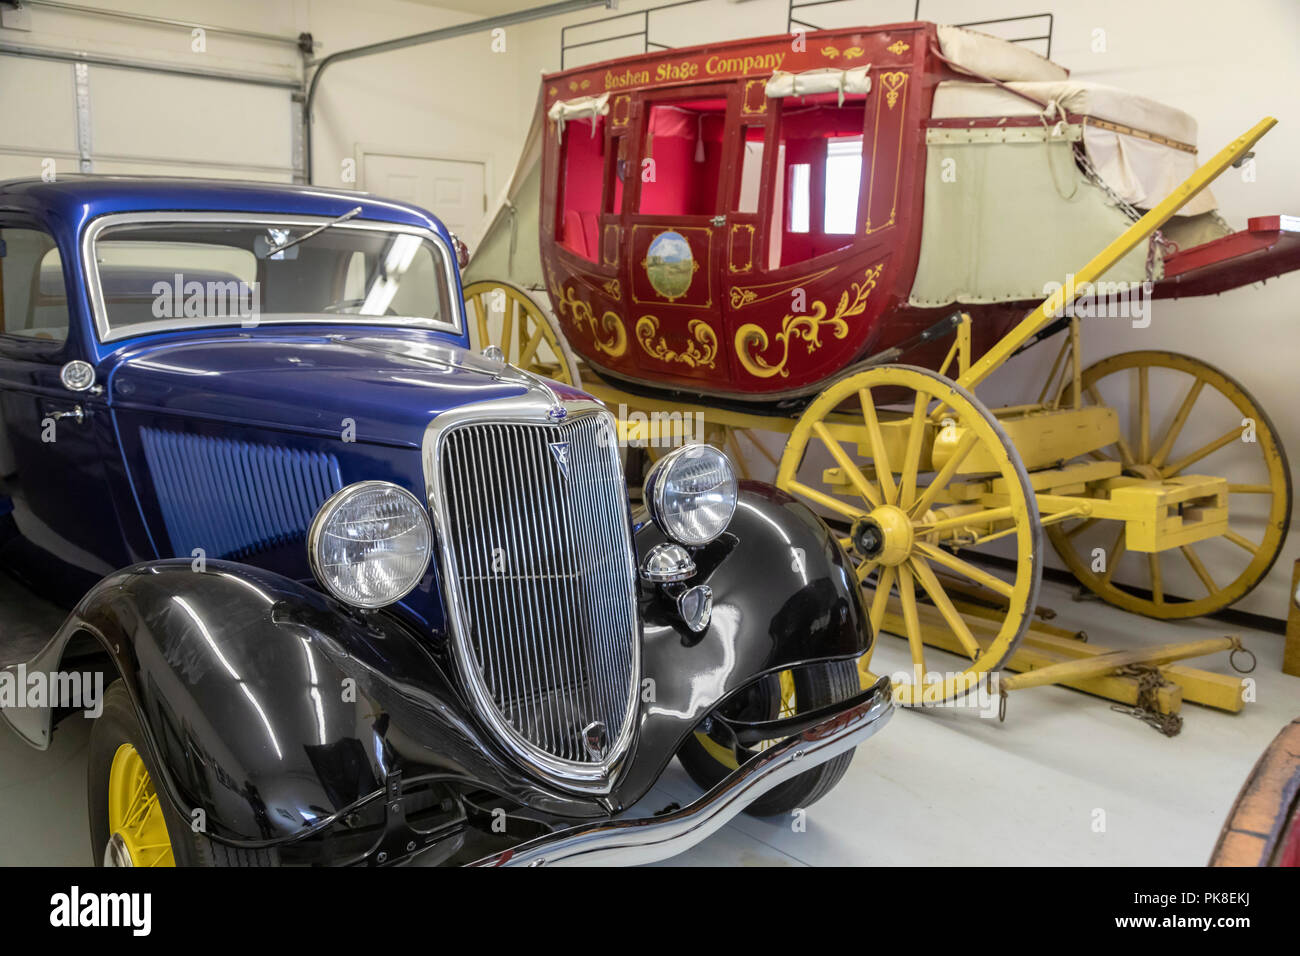 Torrington, Wyoming - A 1934 Ford Roadster and a stage coach on display at the Homesteaders Museum. The museum contains artifacts and information abou - Stock Image